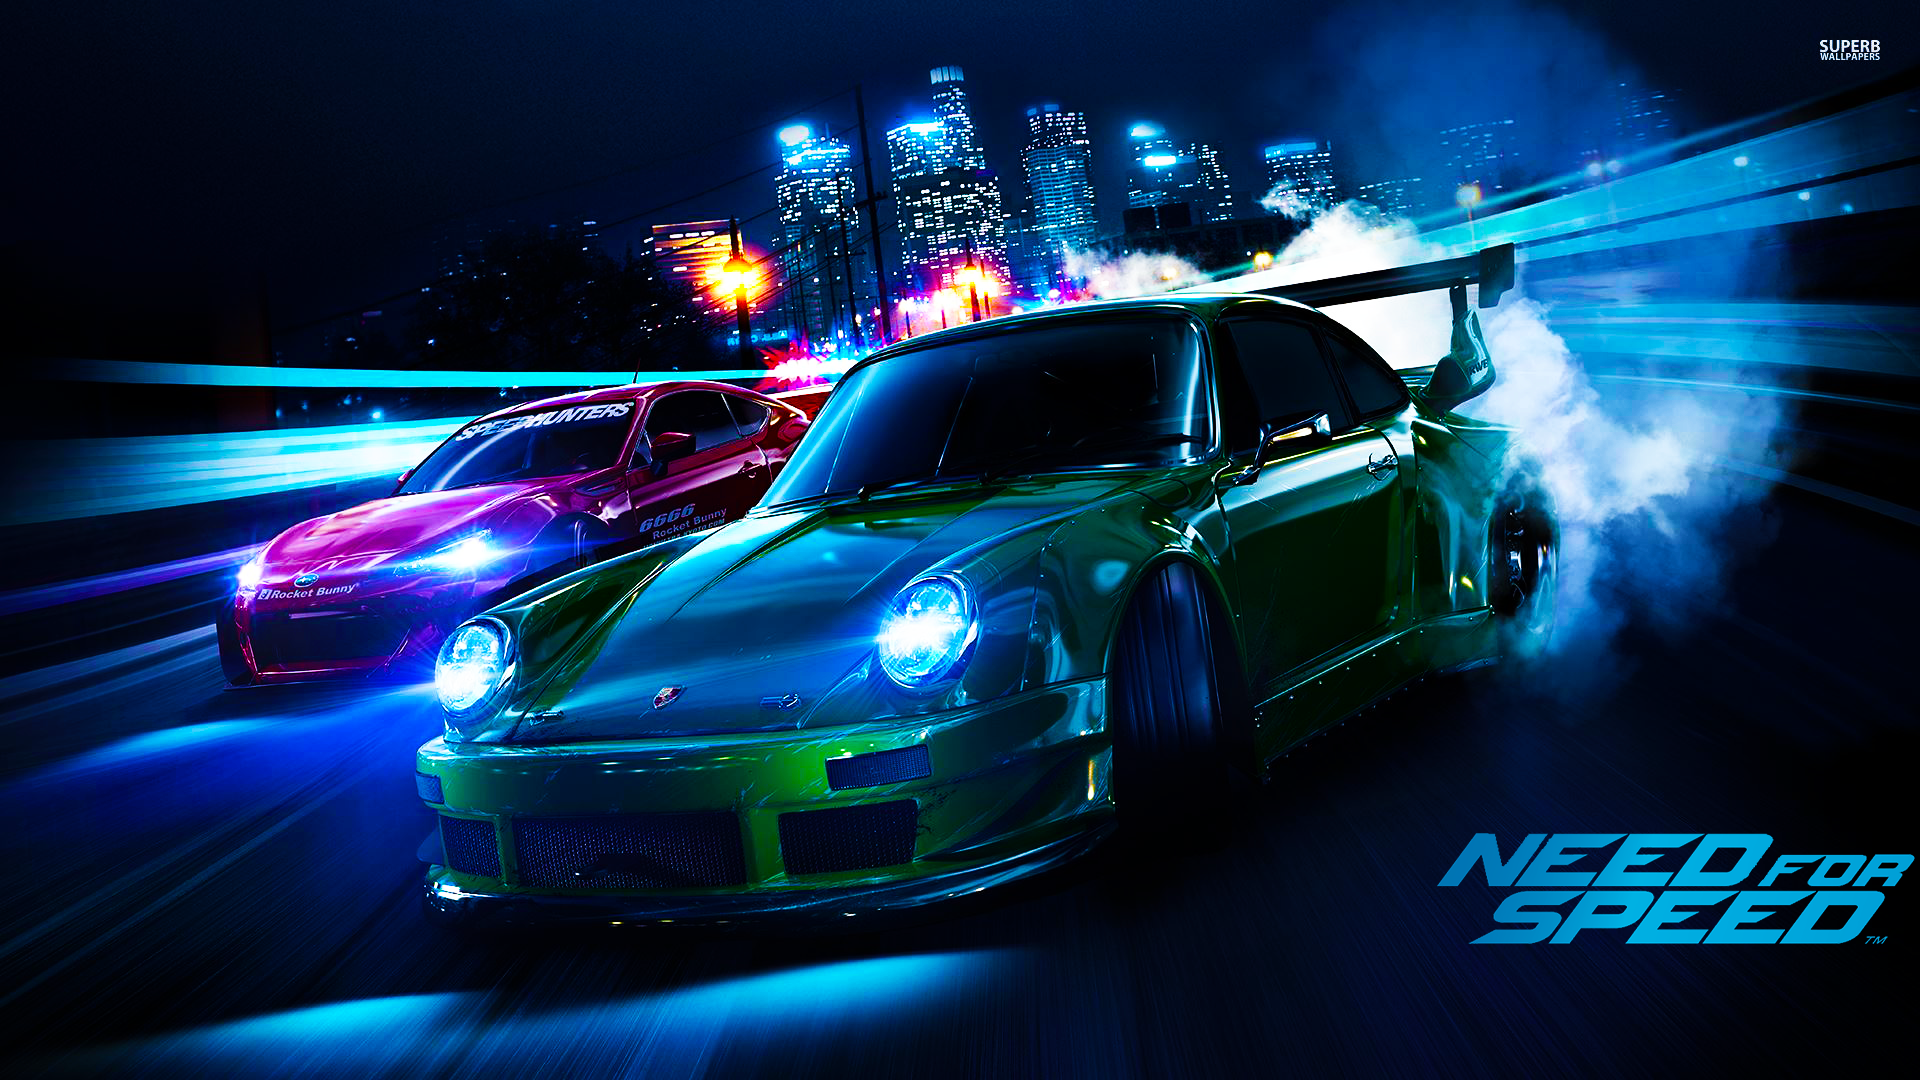 190 need for speed 2015 hd wallpapers backgrounds On need for speed wallpaper